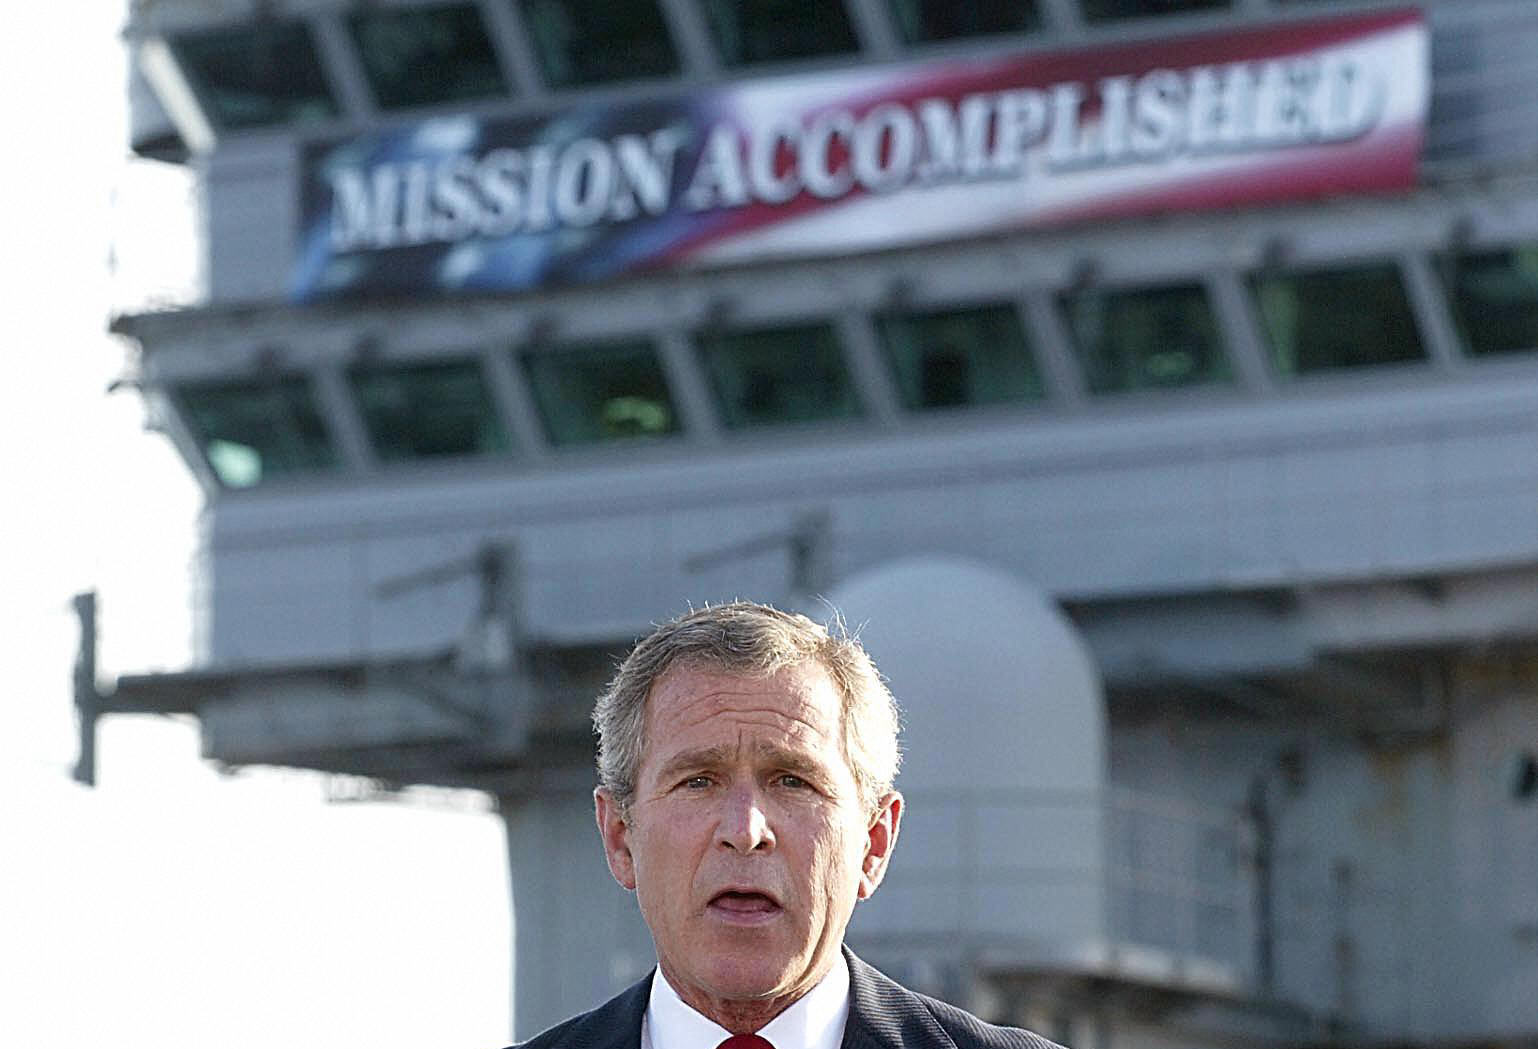 No, really, George W. Bush lied about WMDs